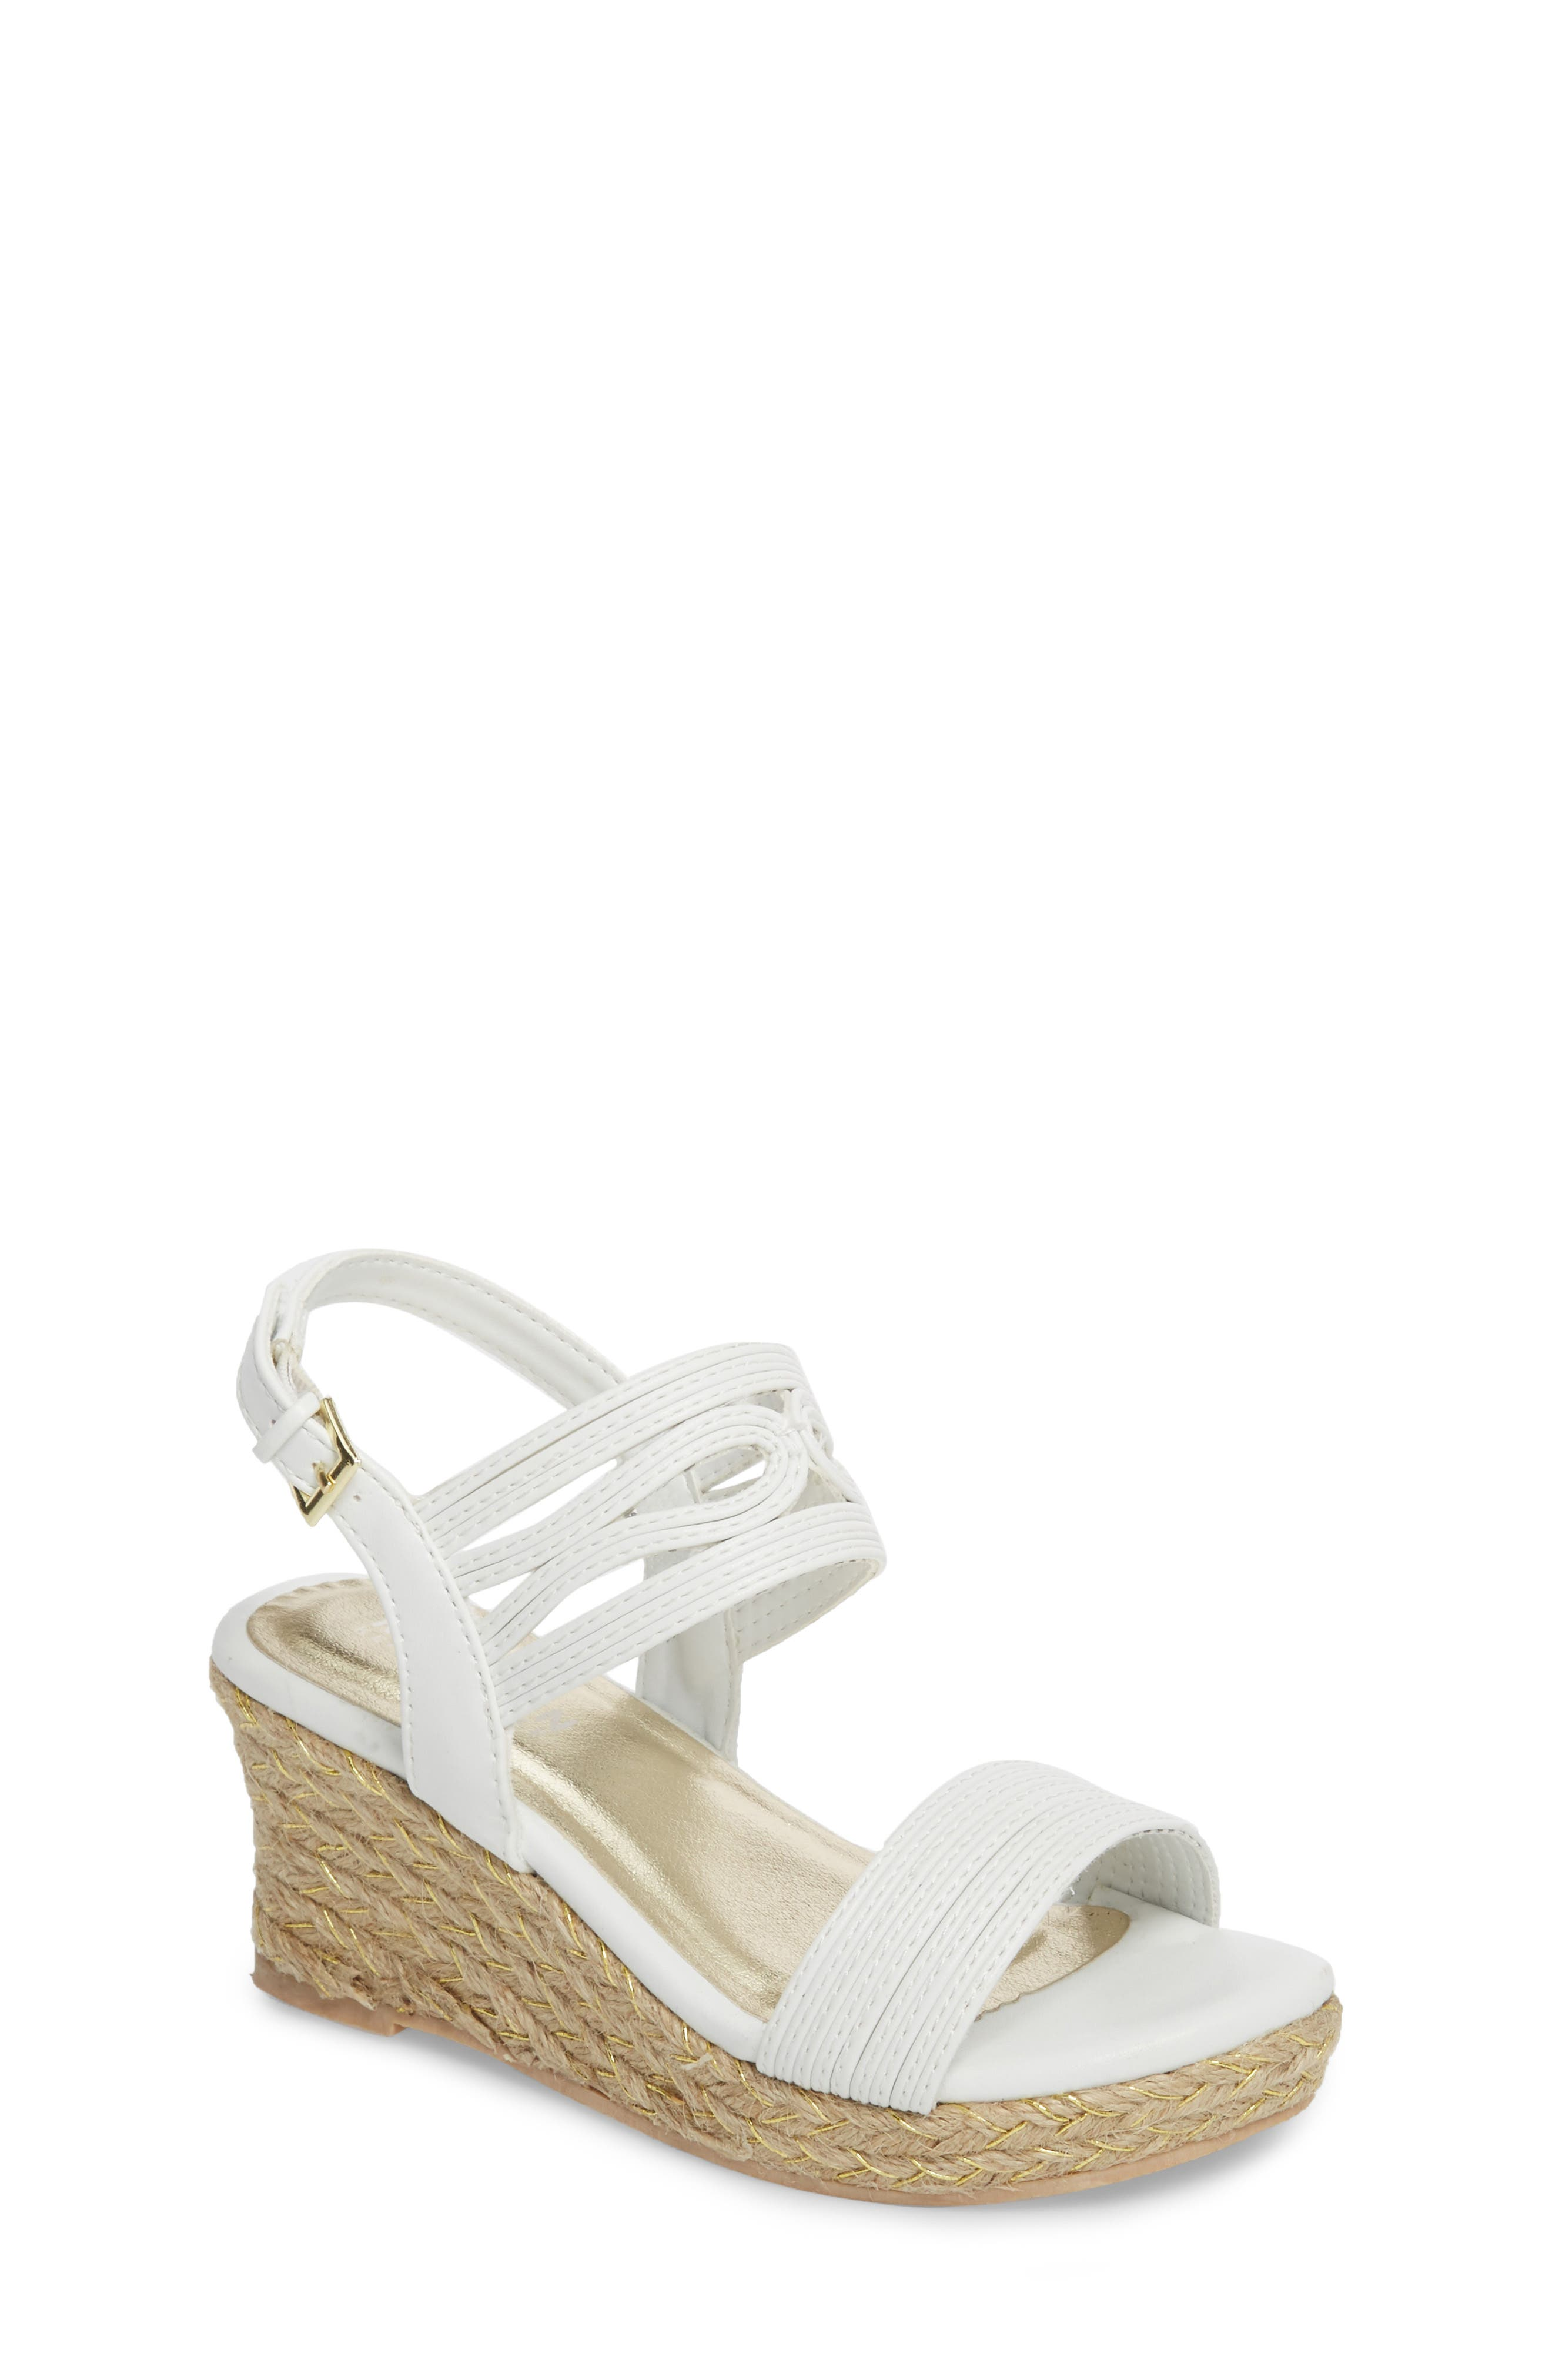 Reed Day Wedge Sandal,                         Main,                         color, 100